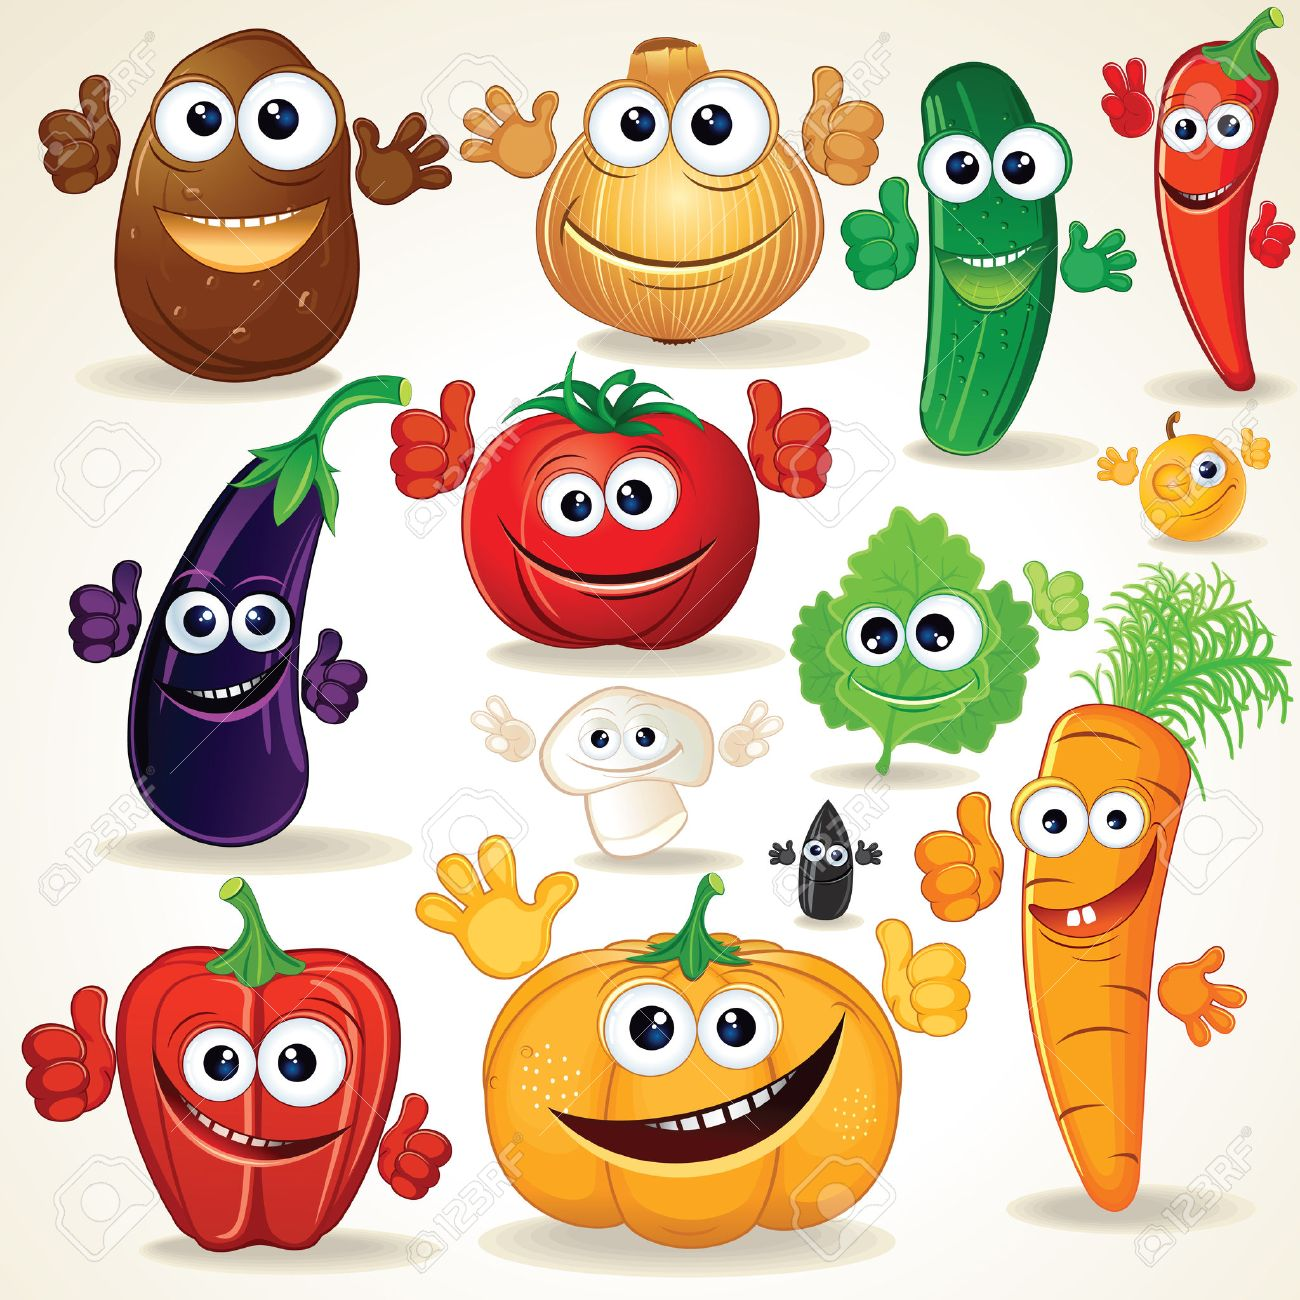 Fruit Vegetables Clip Art Clip Art Cartoon Fruit